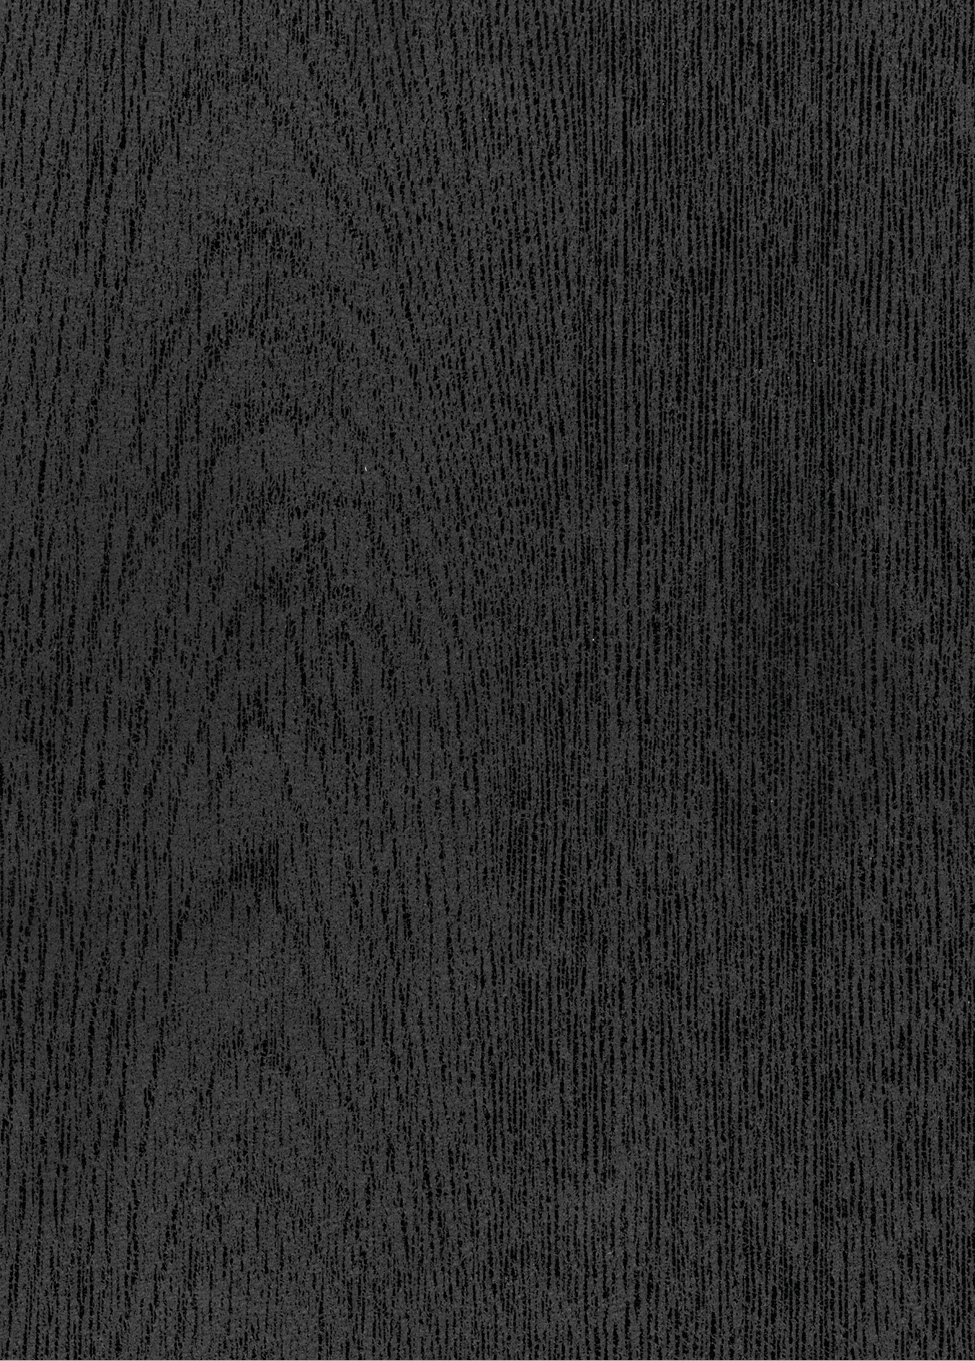 colofer® vario black oak